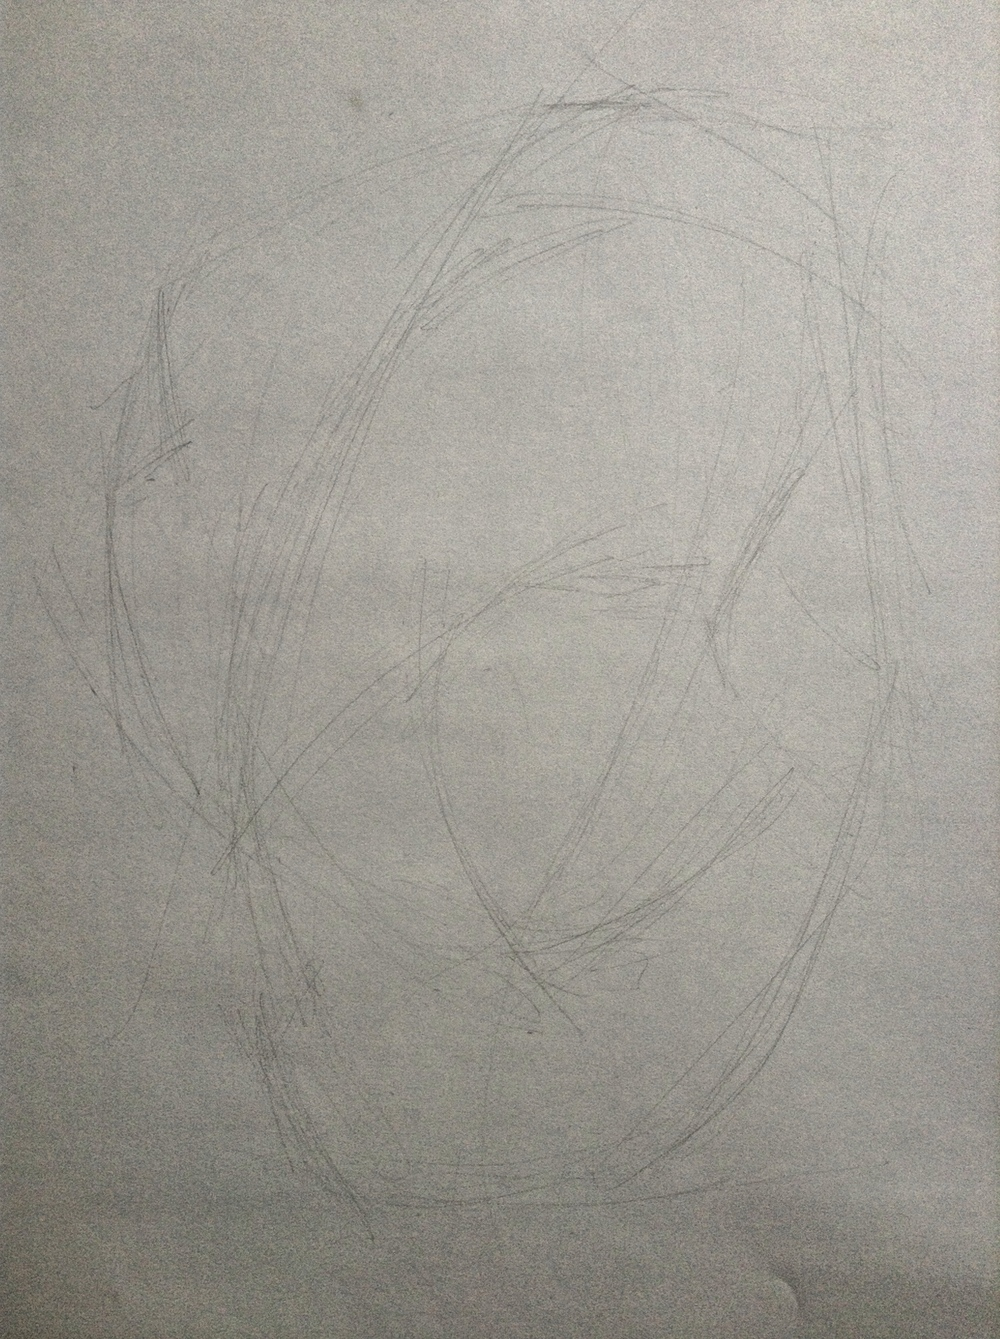 "This is about 10 minutes in--the drawing is 18"" or 20"" tall, and the lines are all extremely loose. At this point I'm looking for lines that pick up lots of different points, e.g. a line that runs along the peak of the hair, the side of the face, and the side of the neck. The ""gesture."""